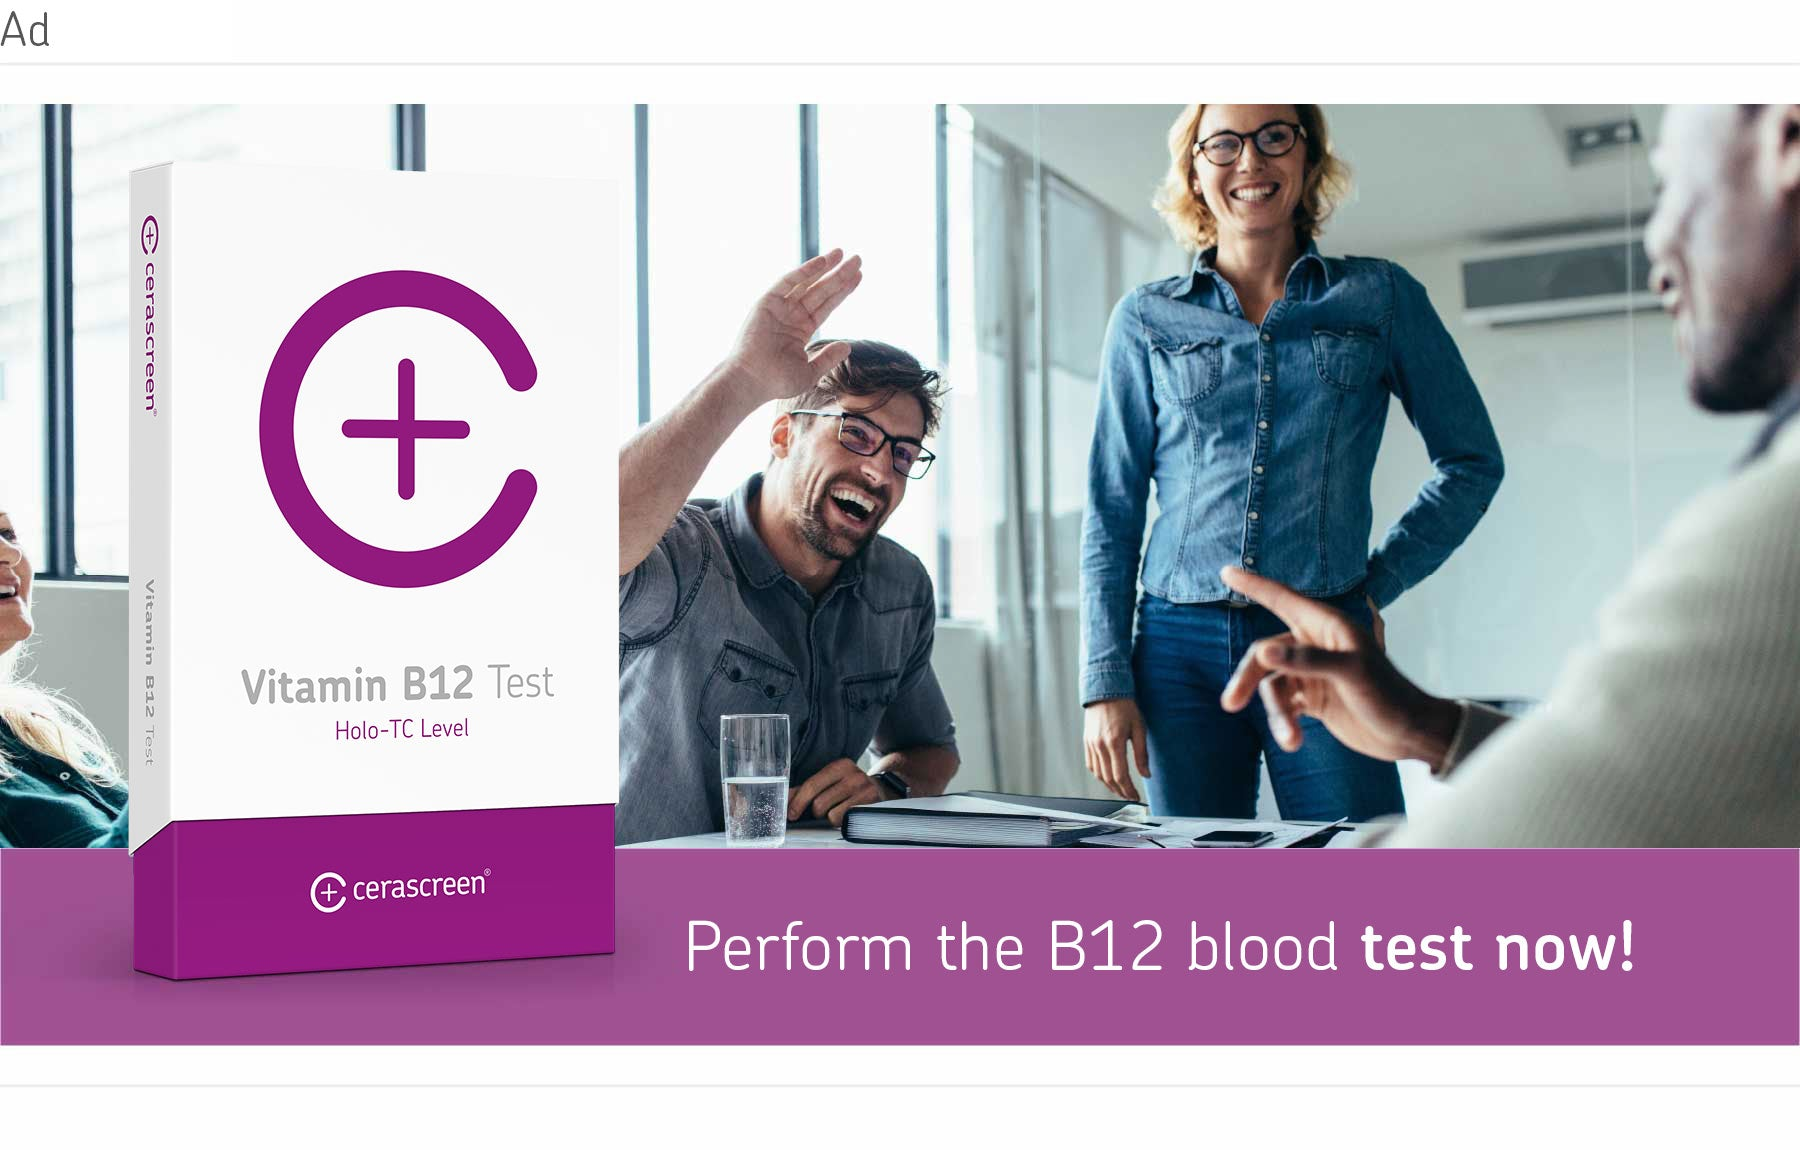 B12 blood test